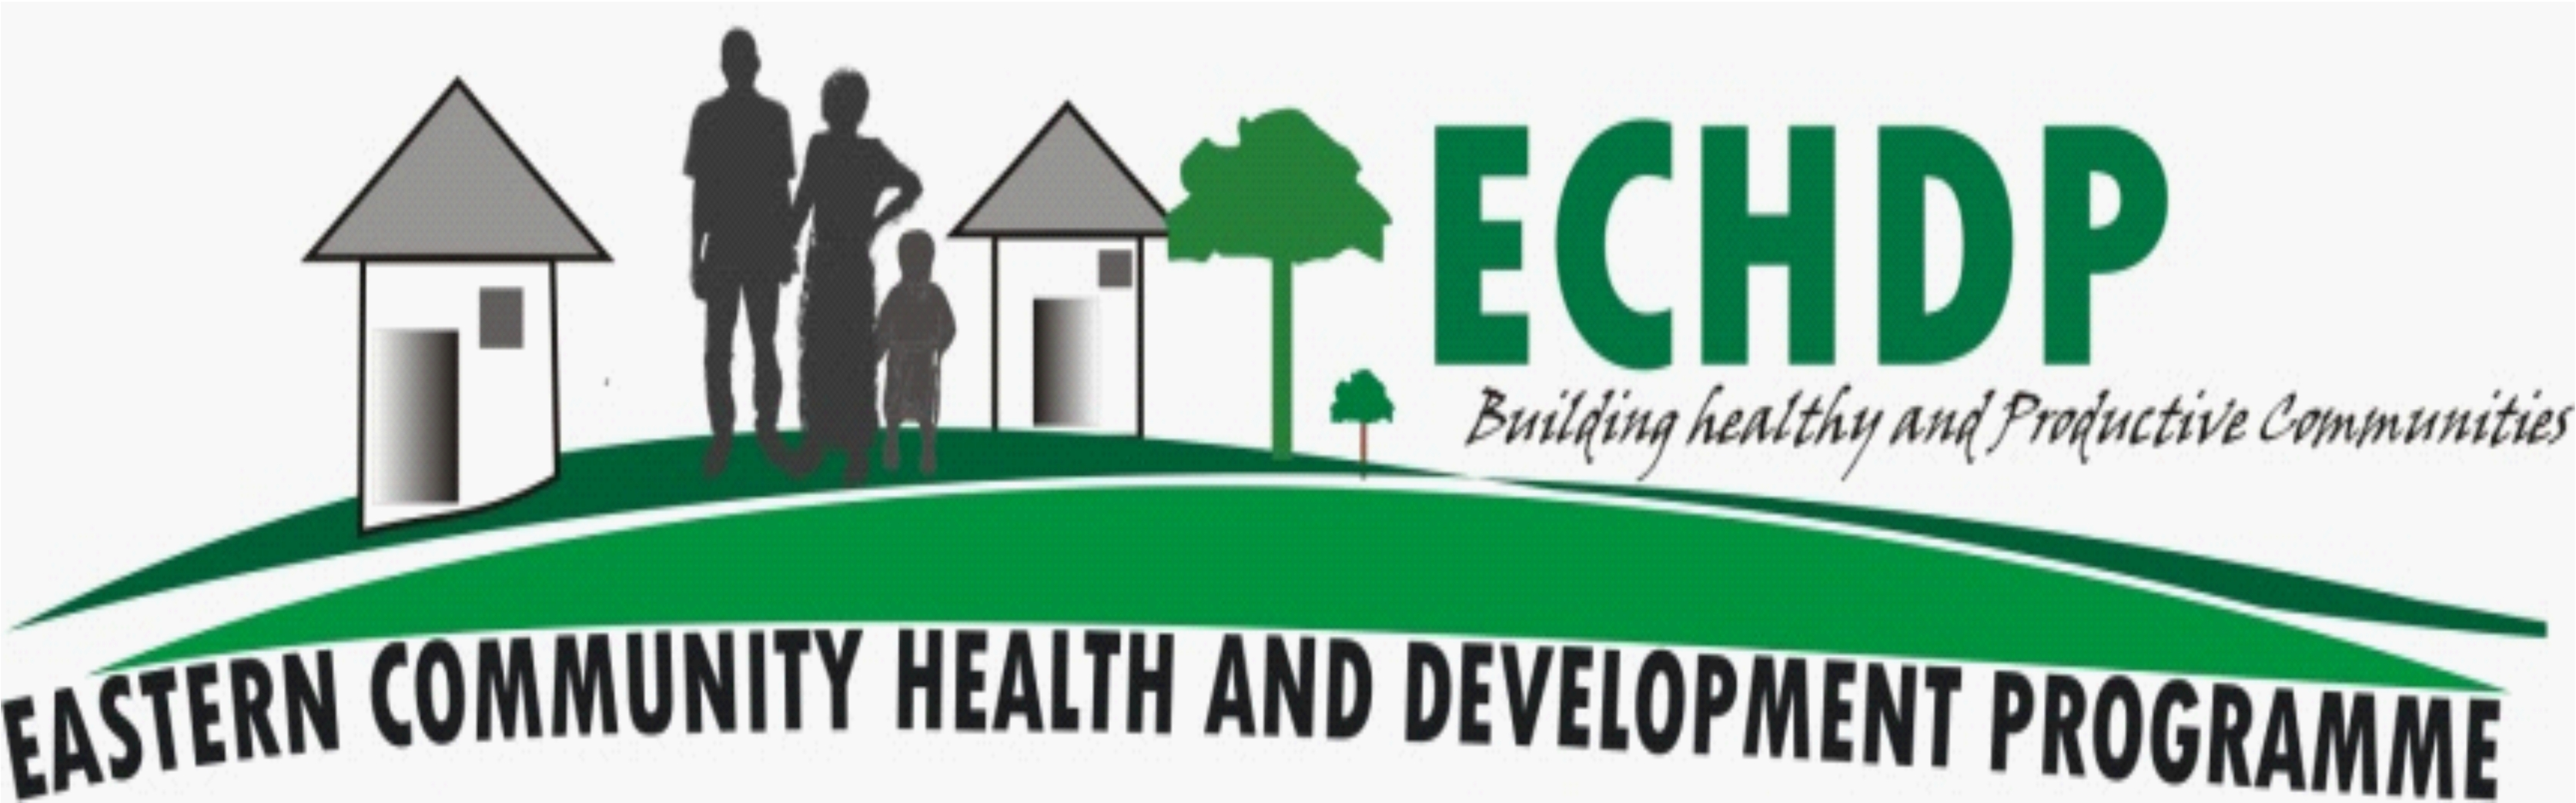 EASTERN COMMUNITY HEALTH AND DEVELOPMENT PROGRAMME